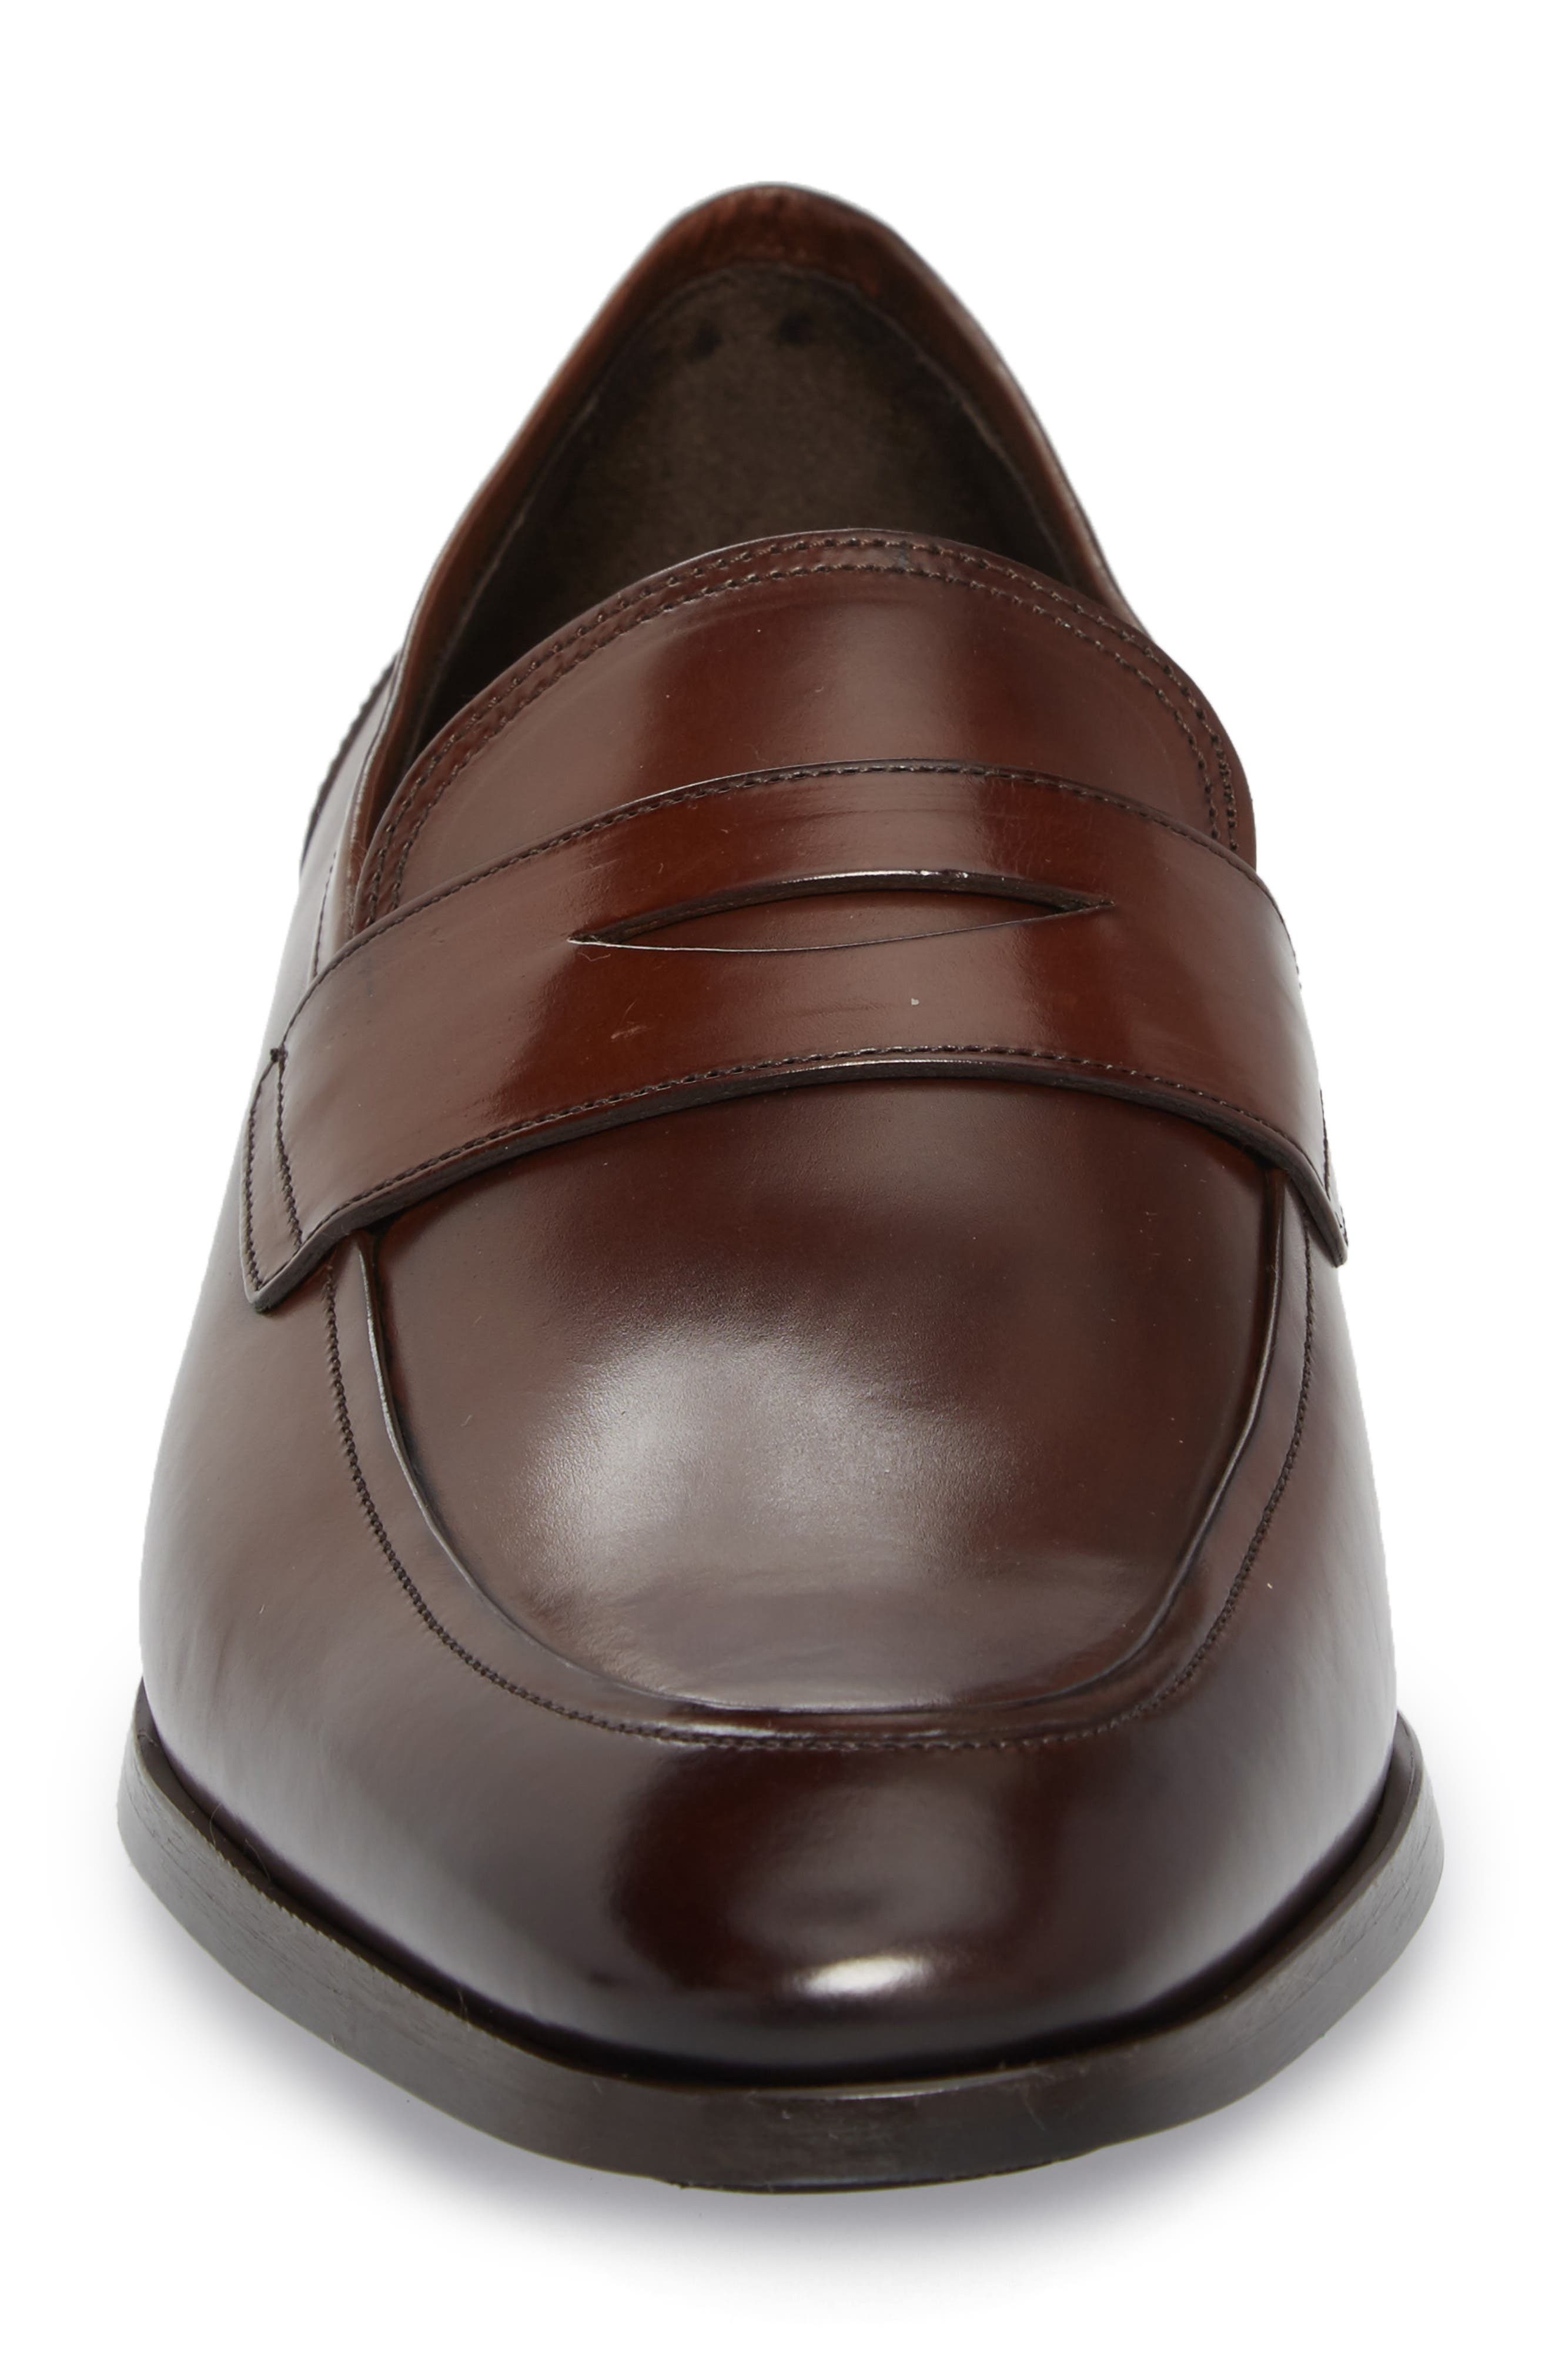 Deane Penny Loafer,                             Alternate thumbnail 4, color,                             Marrone Leather